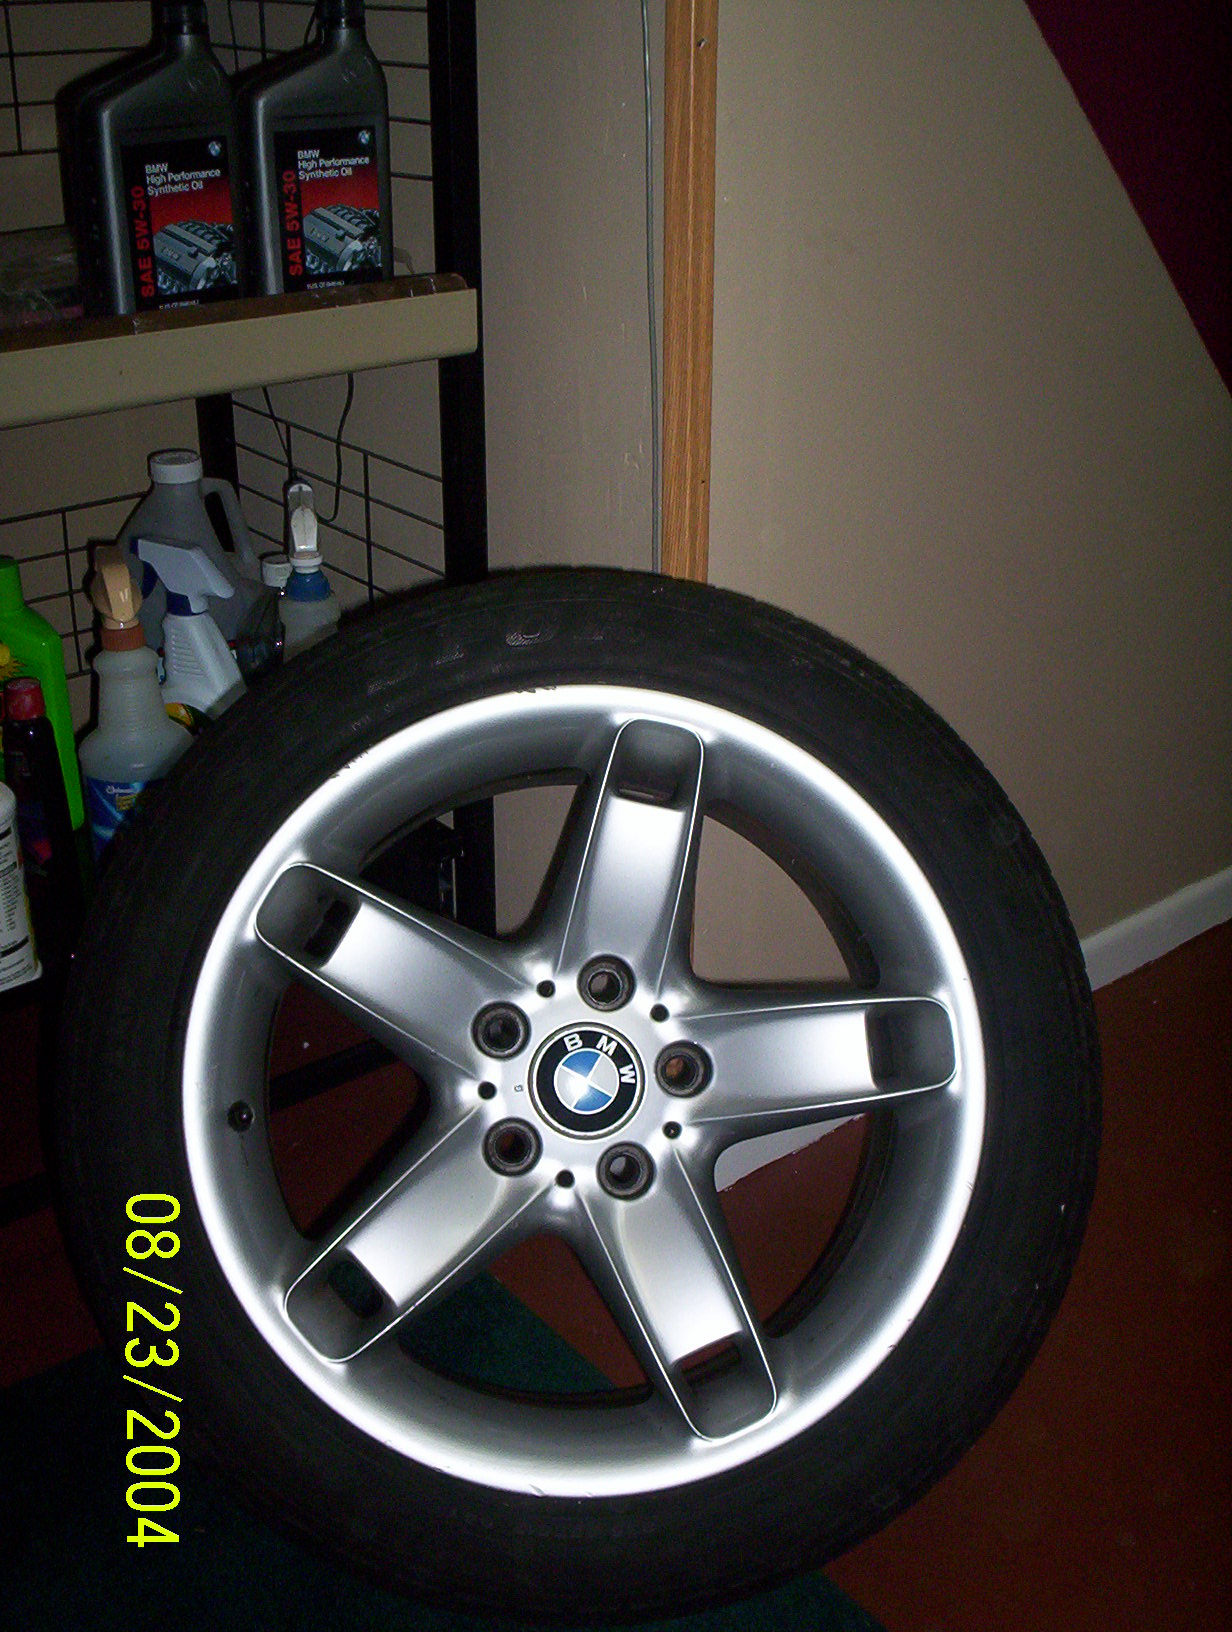 Is This Bmw Wheel #49? Will It Fit The E39?-tires_picture_001.jpg